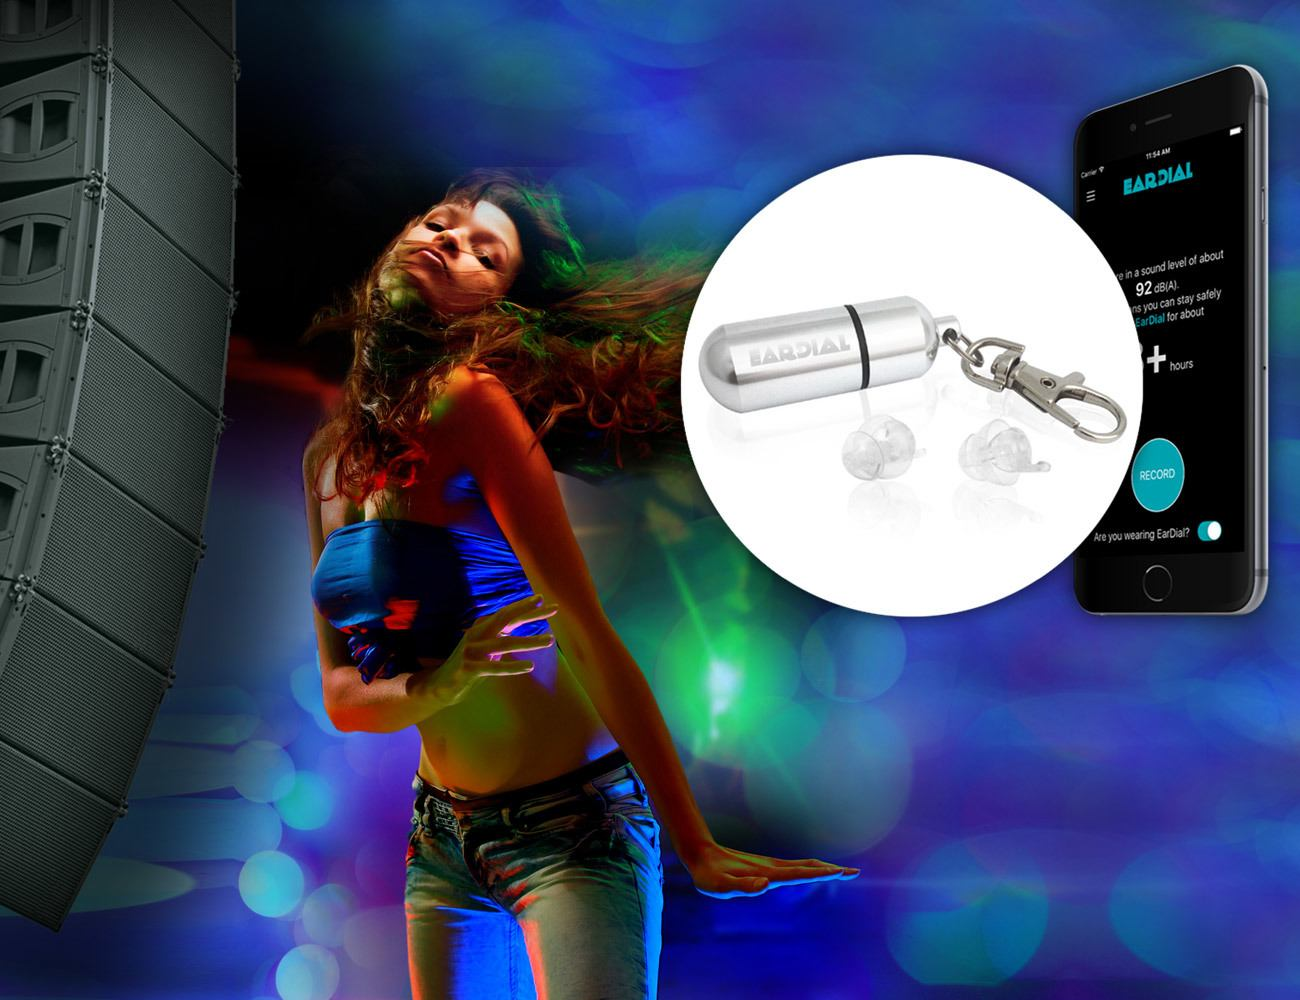 EarDial+%26%238211%3B+The+Invisible+Smart+Earplugs+For+Live+Music